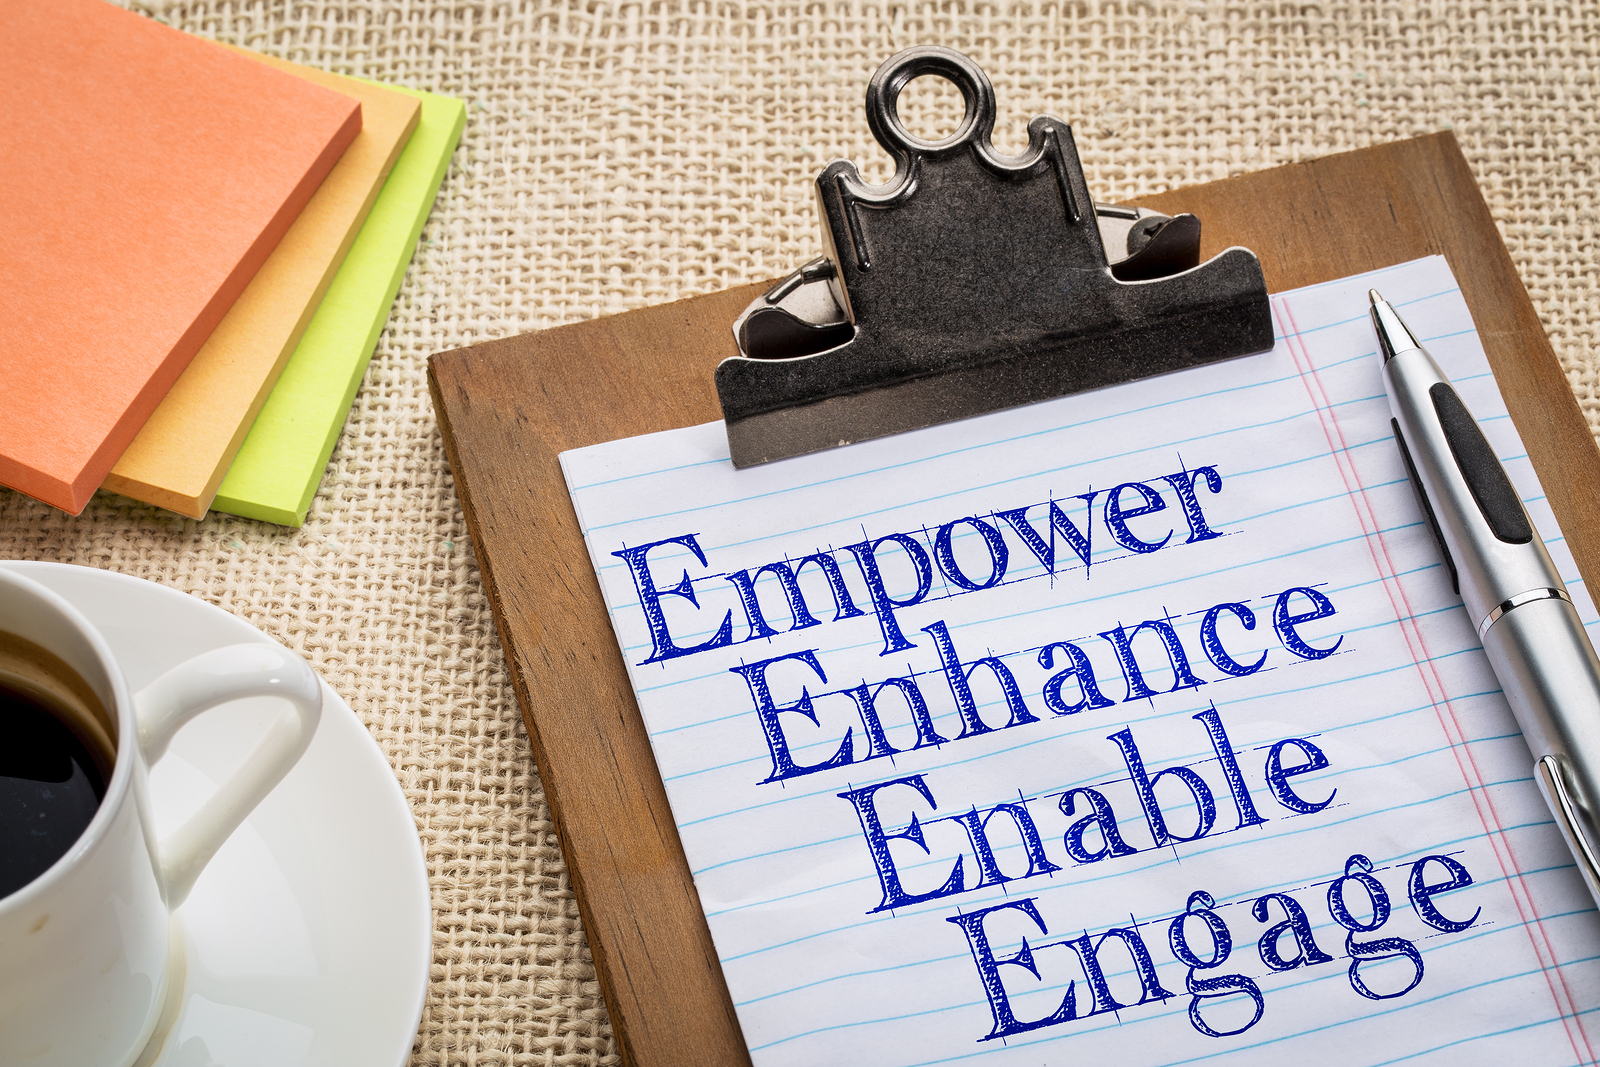 motivational leadership, coaching or business concept - empower,